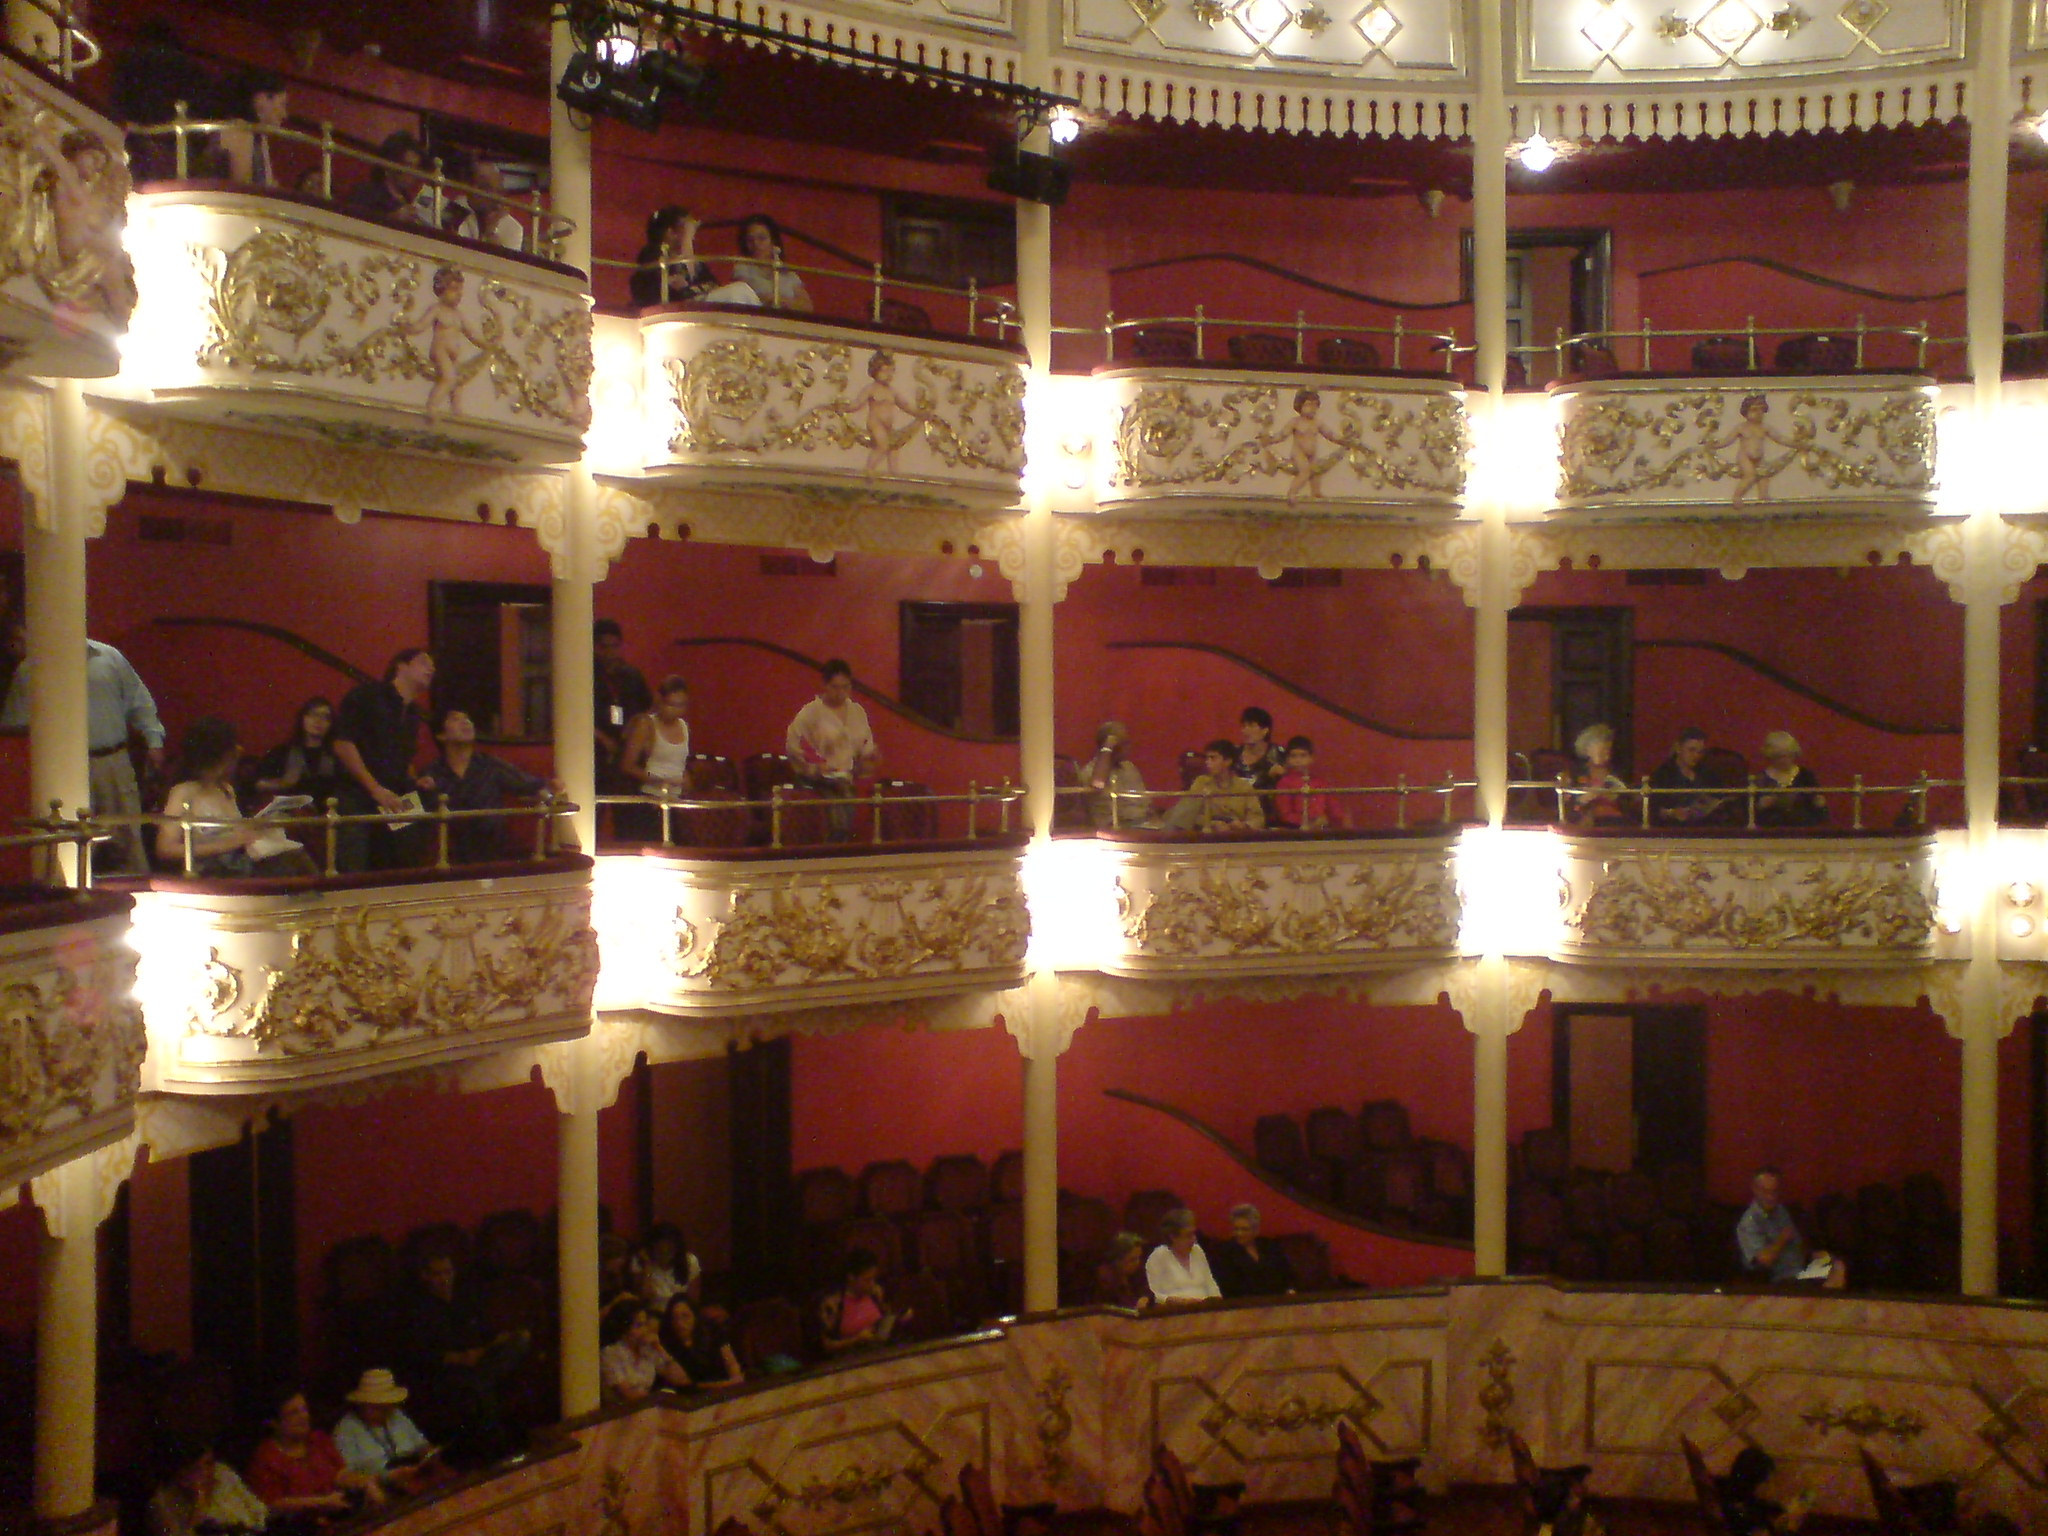 National Theatre, Panama